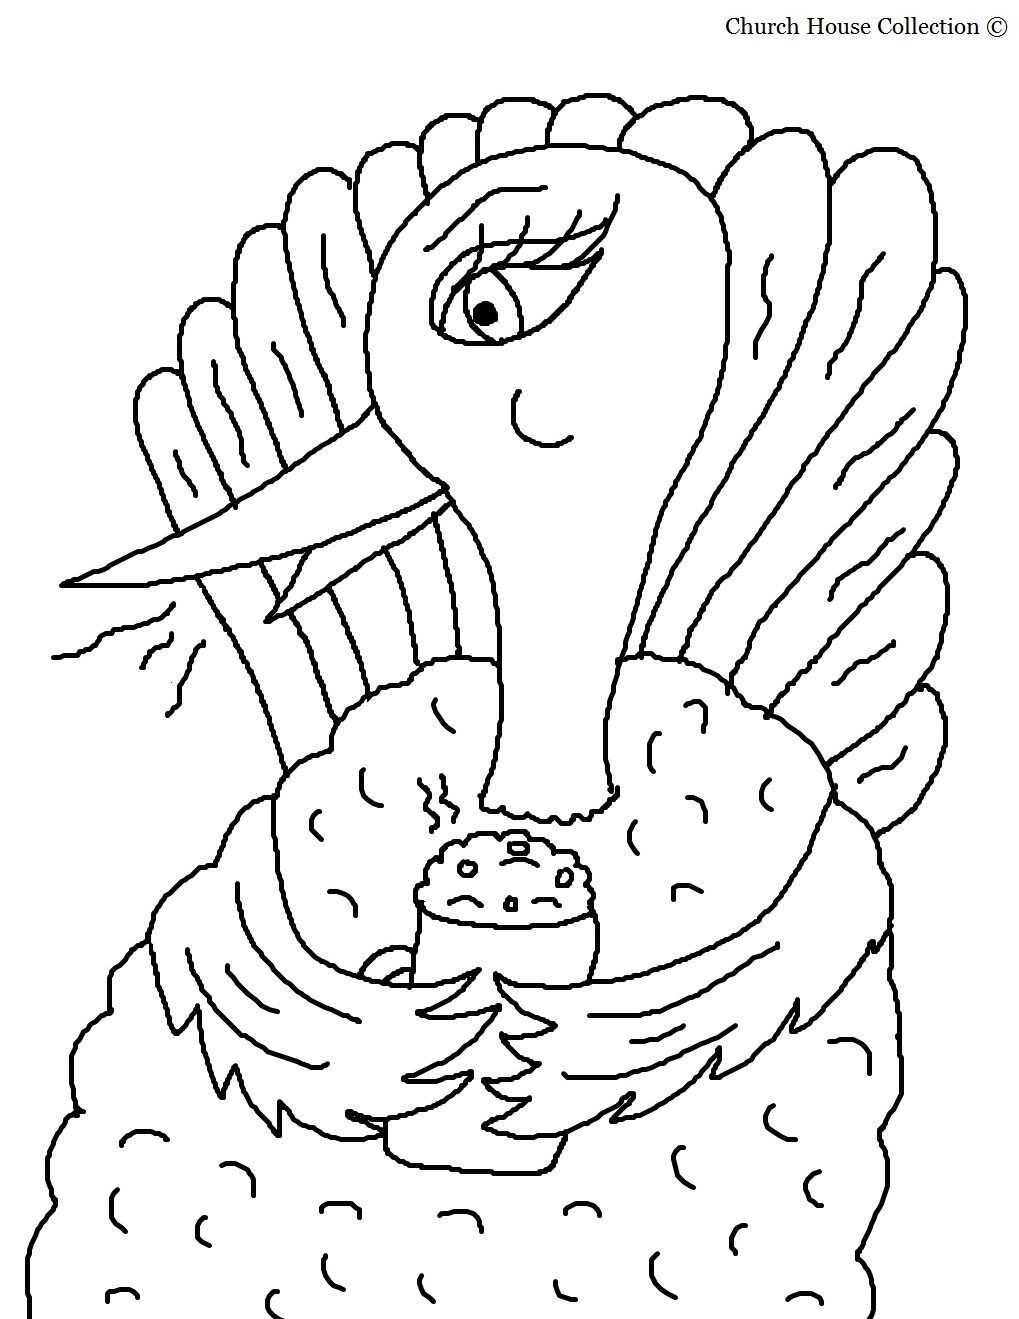 Church House Collection Blog: Turkey Drinking Hot